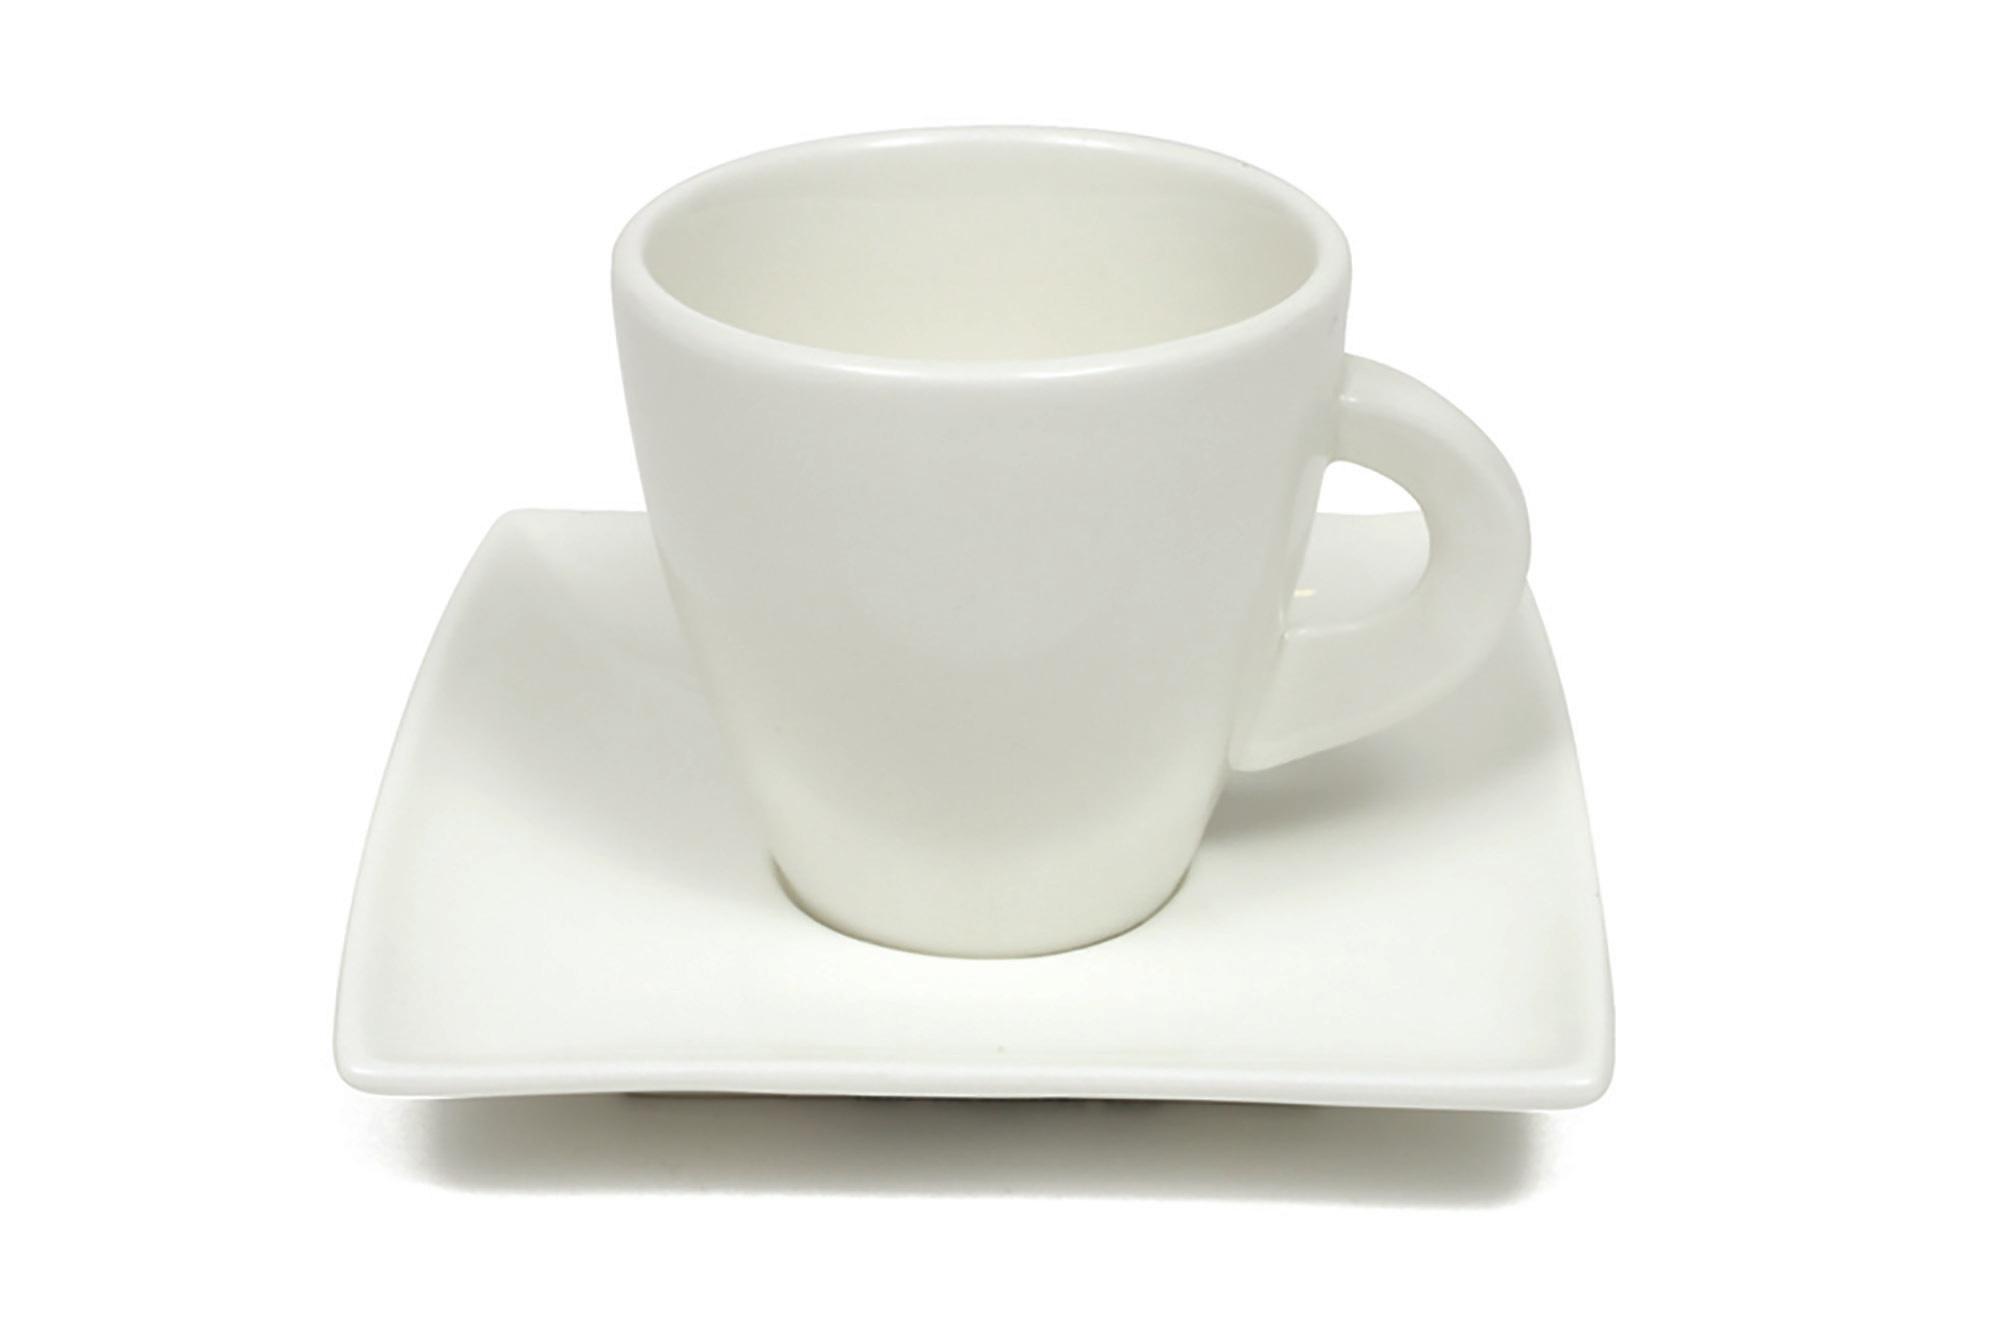 Maxwell & Williams White Basics West Meets East 230Ml Cup And Saucer